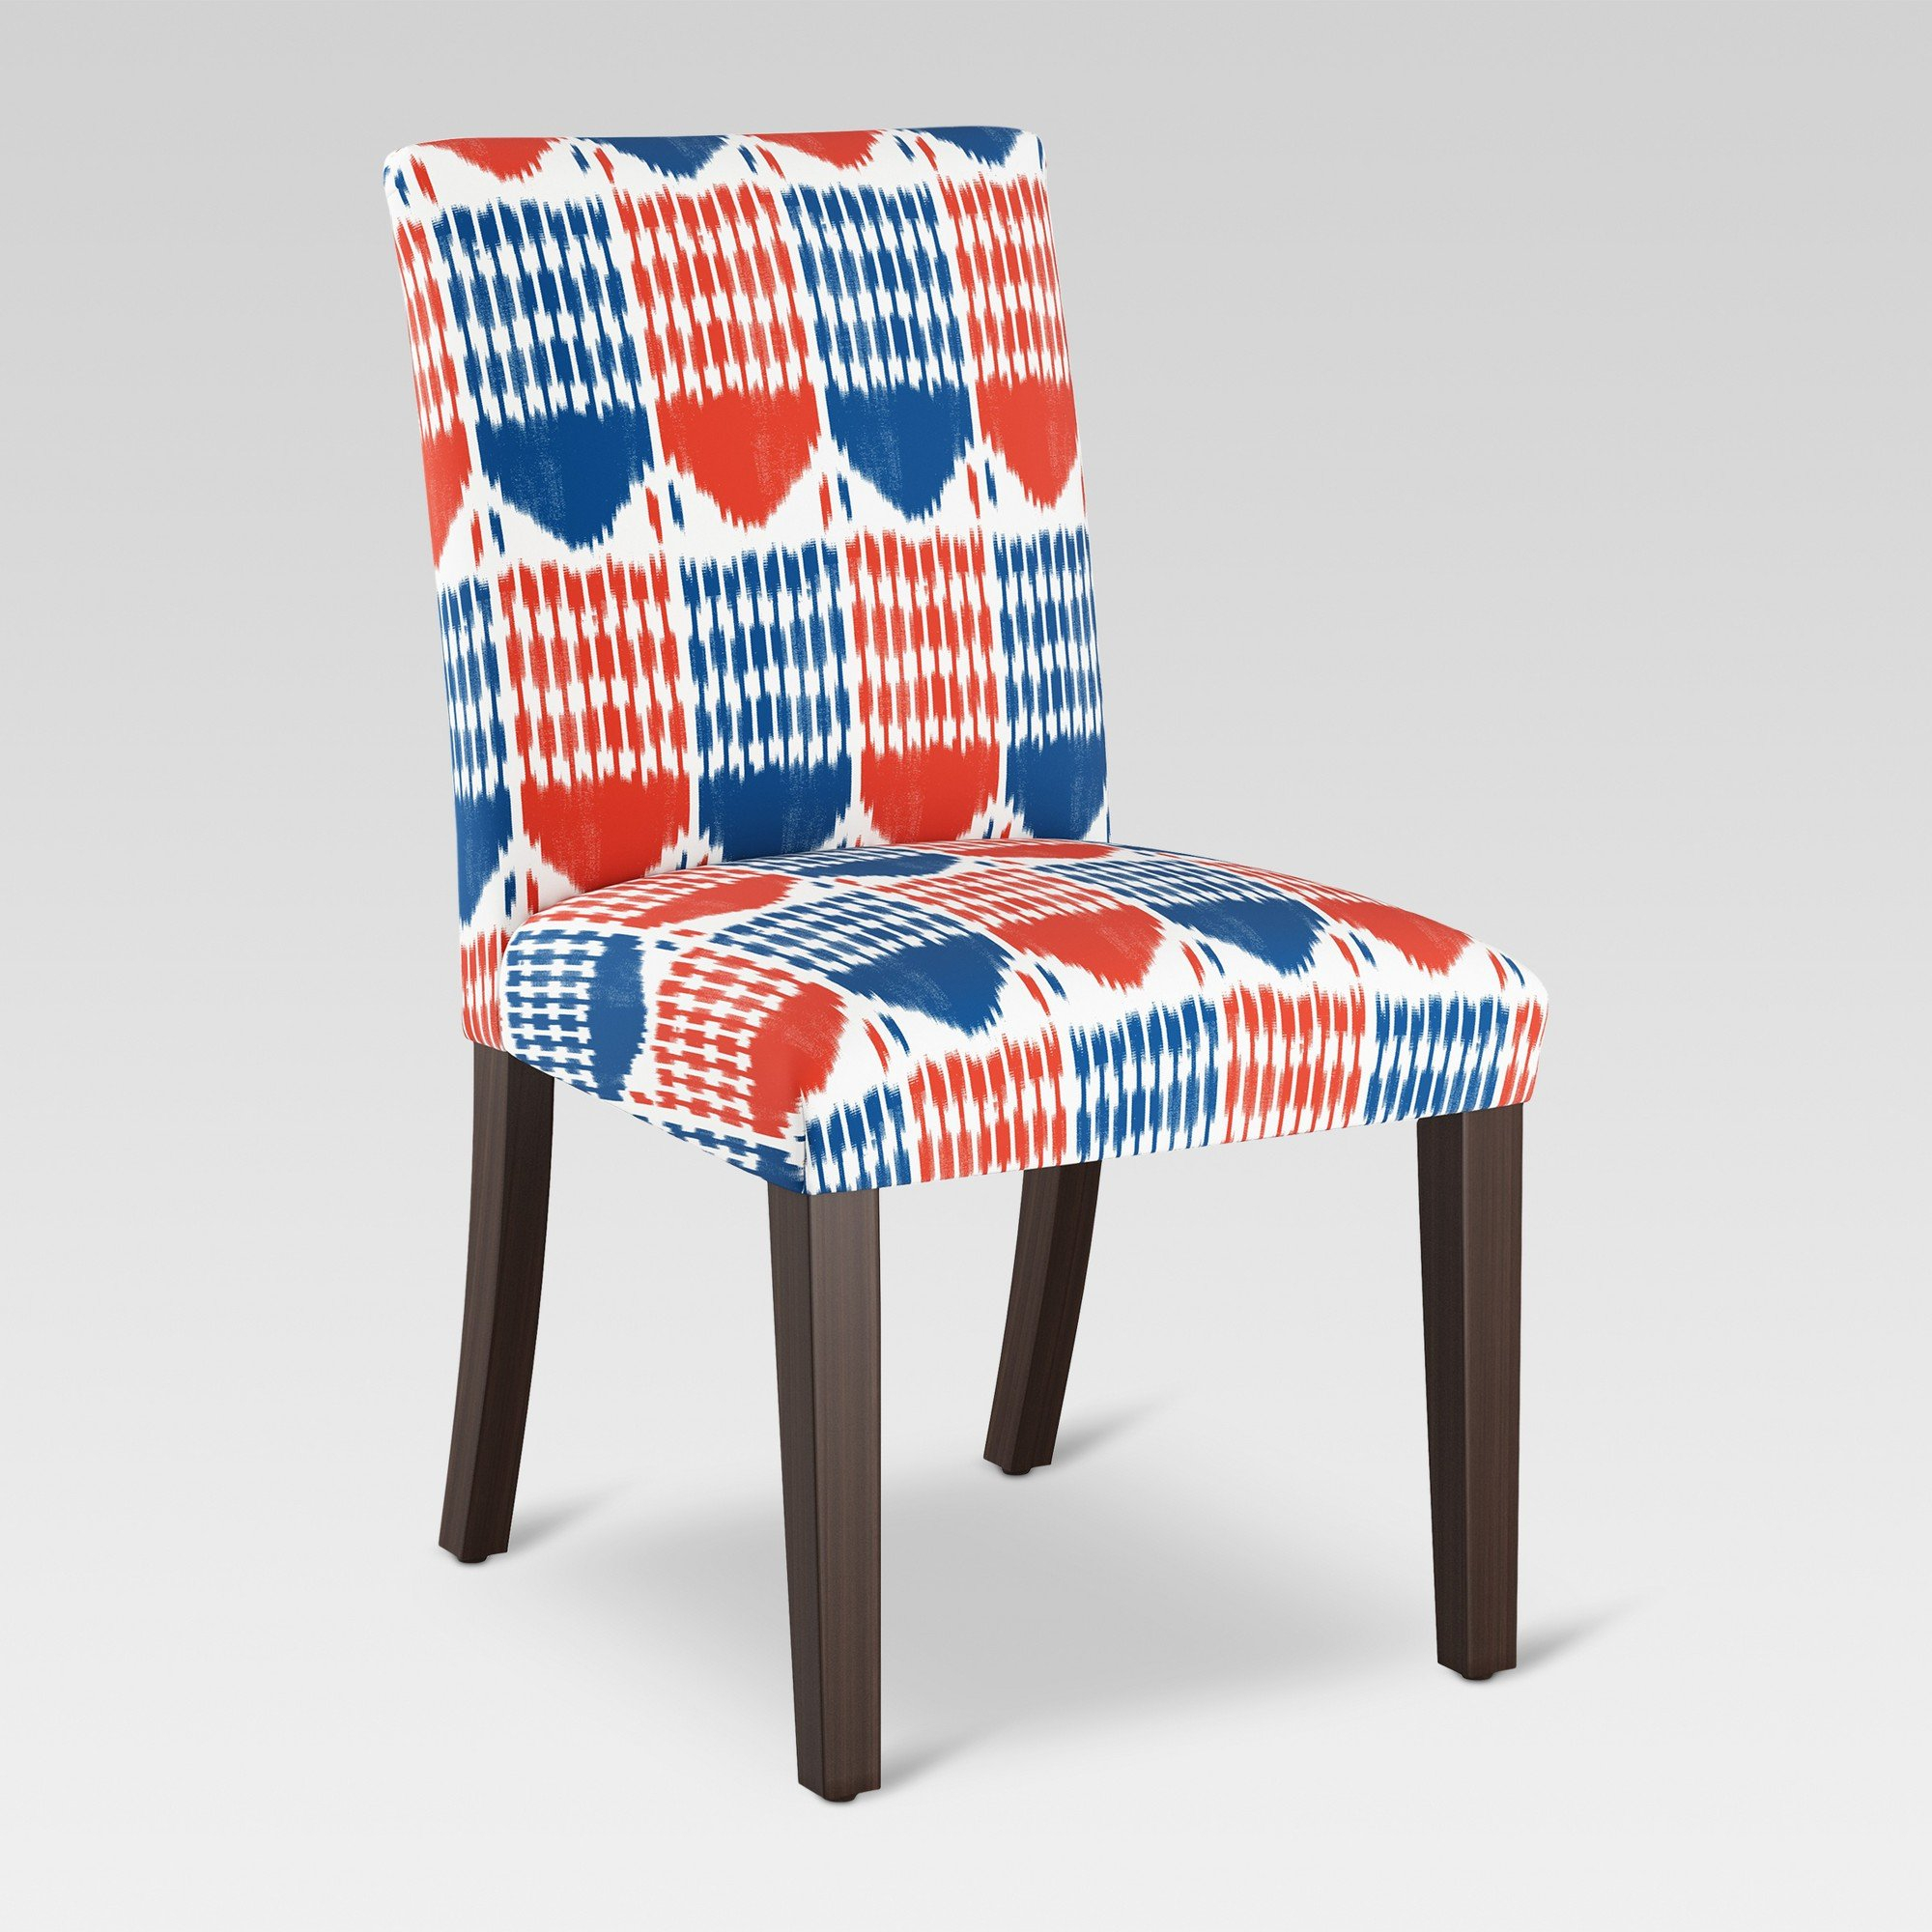 Parsons Dining Chair Ikat Blue/Red – Threshold – Target For Daleyza Slipper Chairs (View 14 of 15)